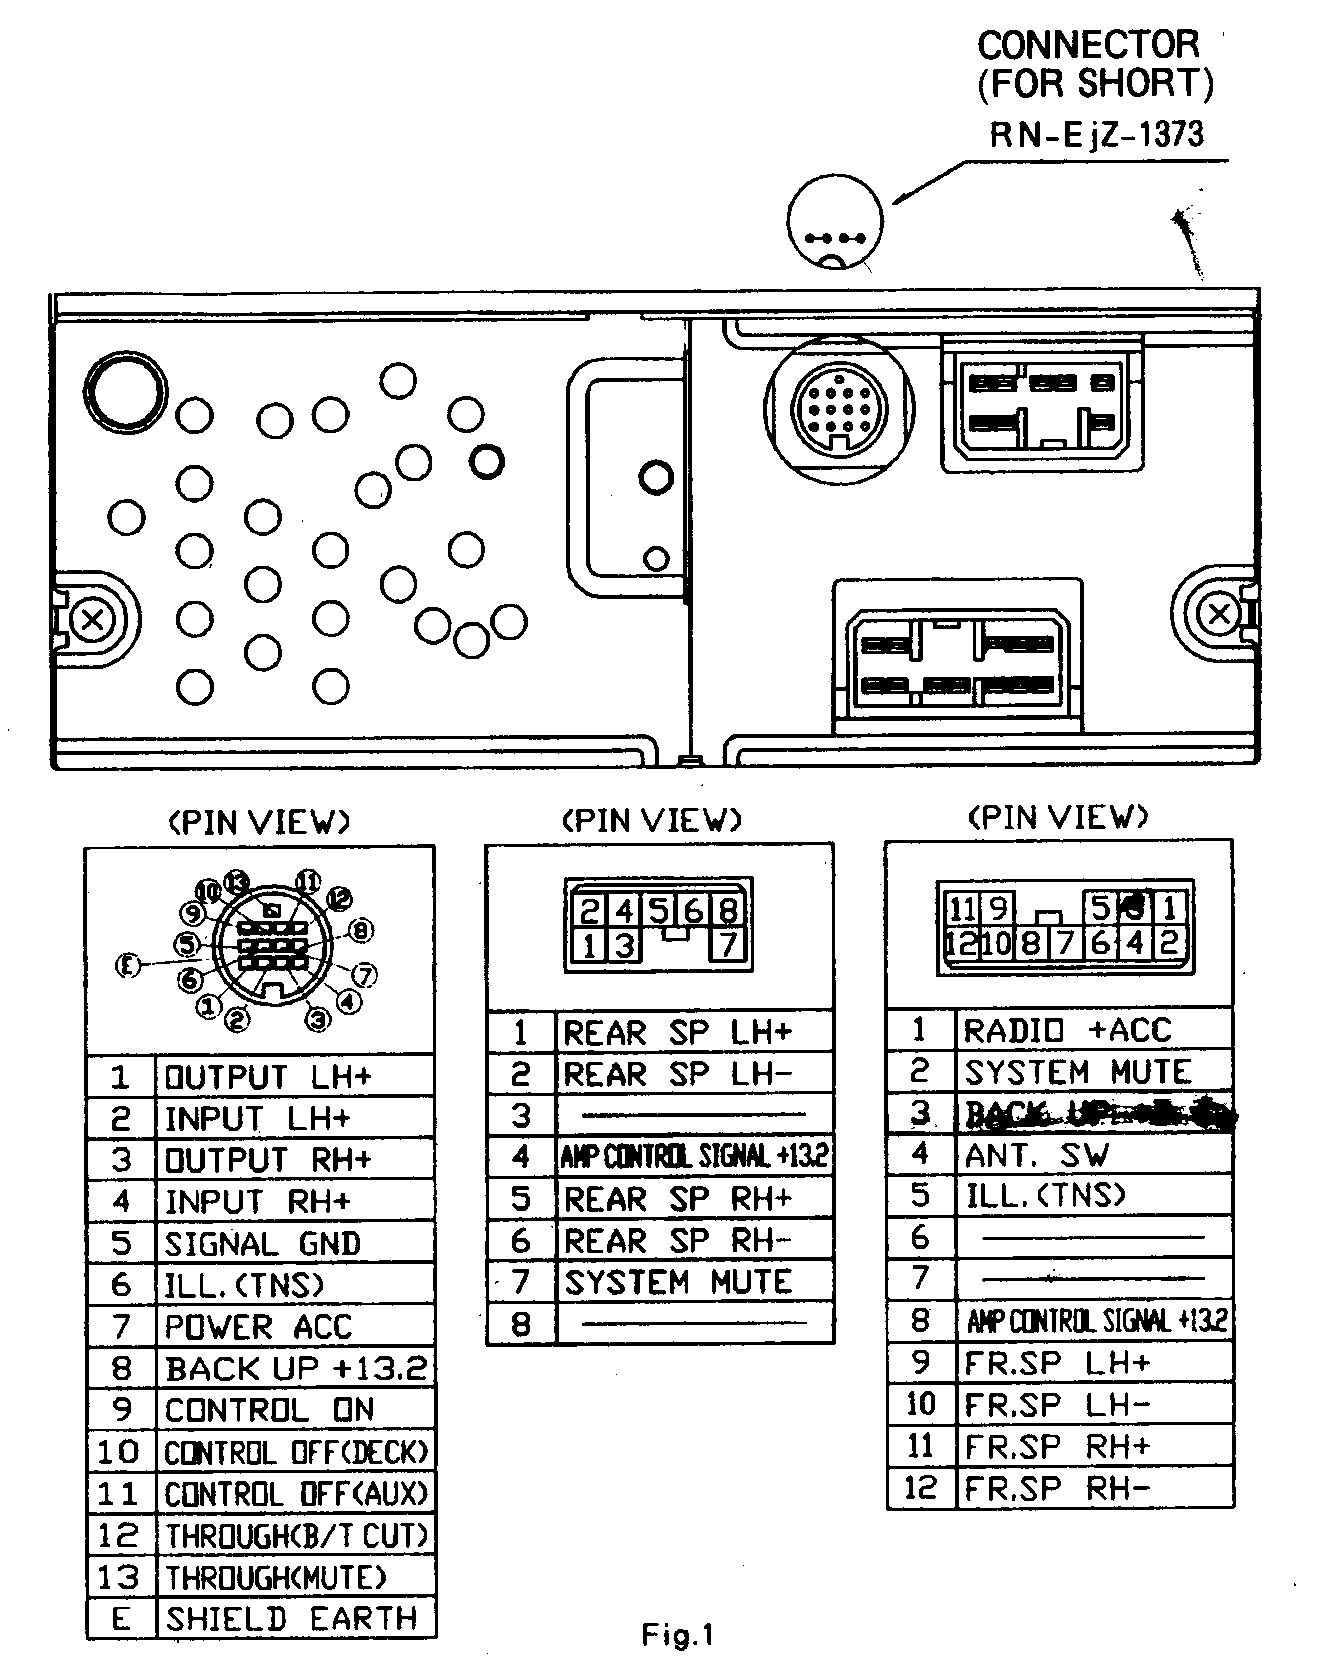 stereo mini plug wiring diagram 1984 evinrude 115 mazda car radio audio autoradio